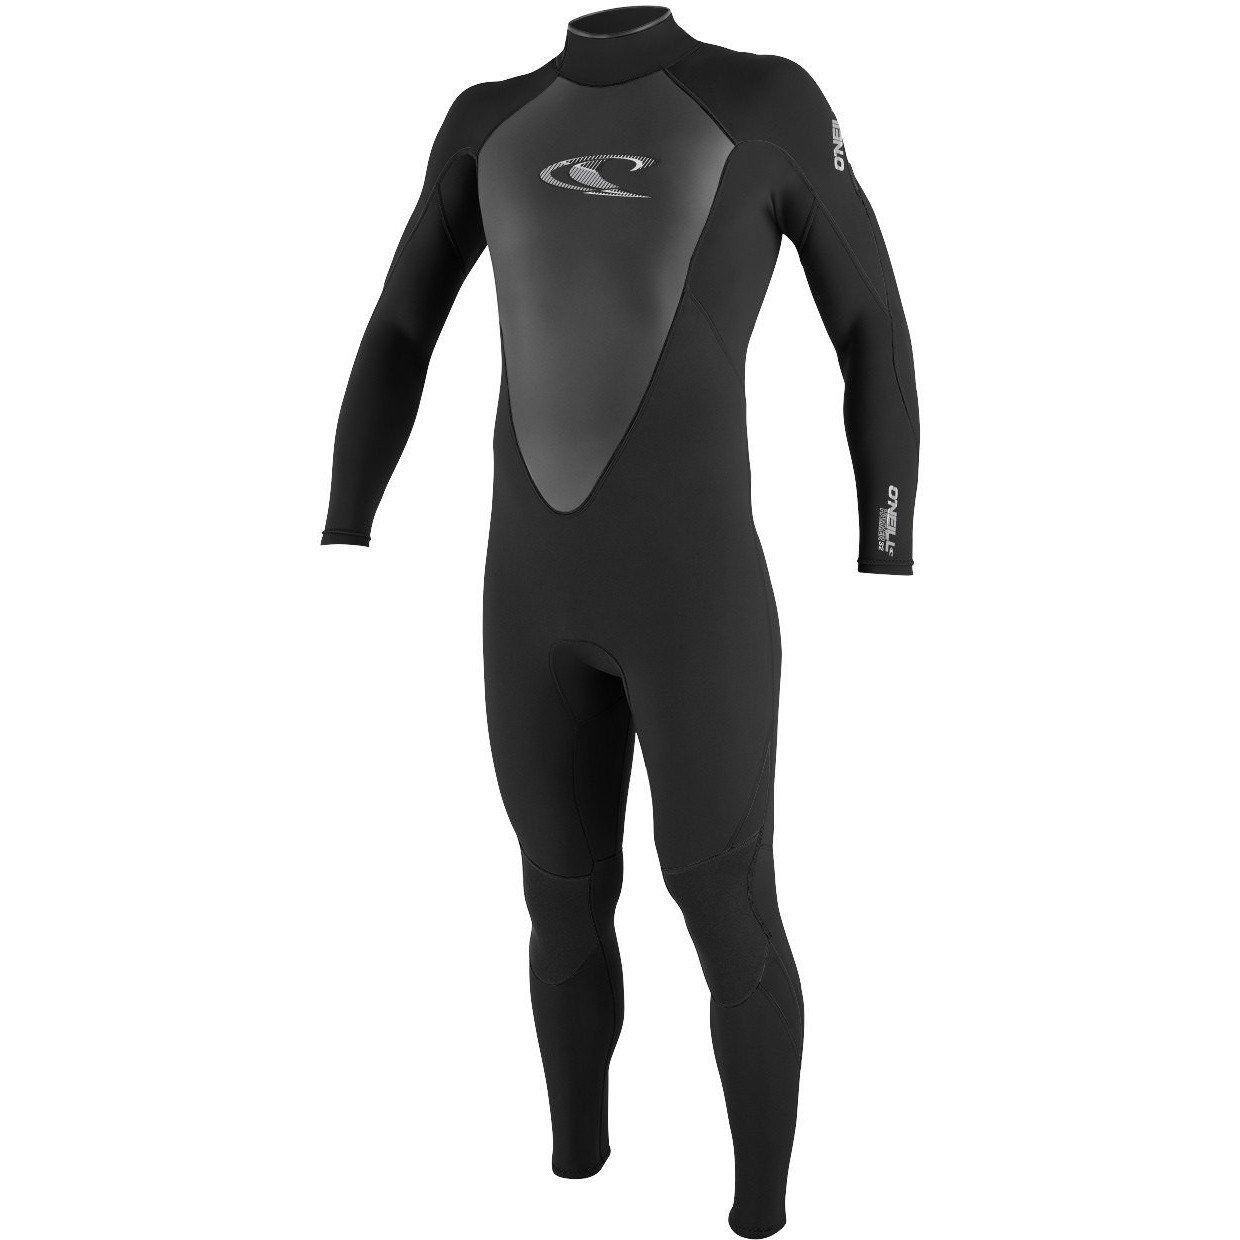 O Neill Hammer Full Wetsuit Wetsuit Men Wetsuits Wetsuit